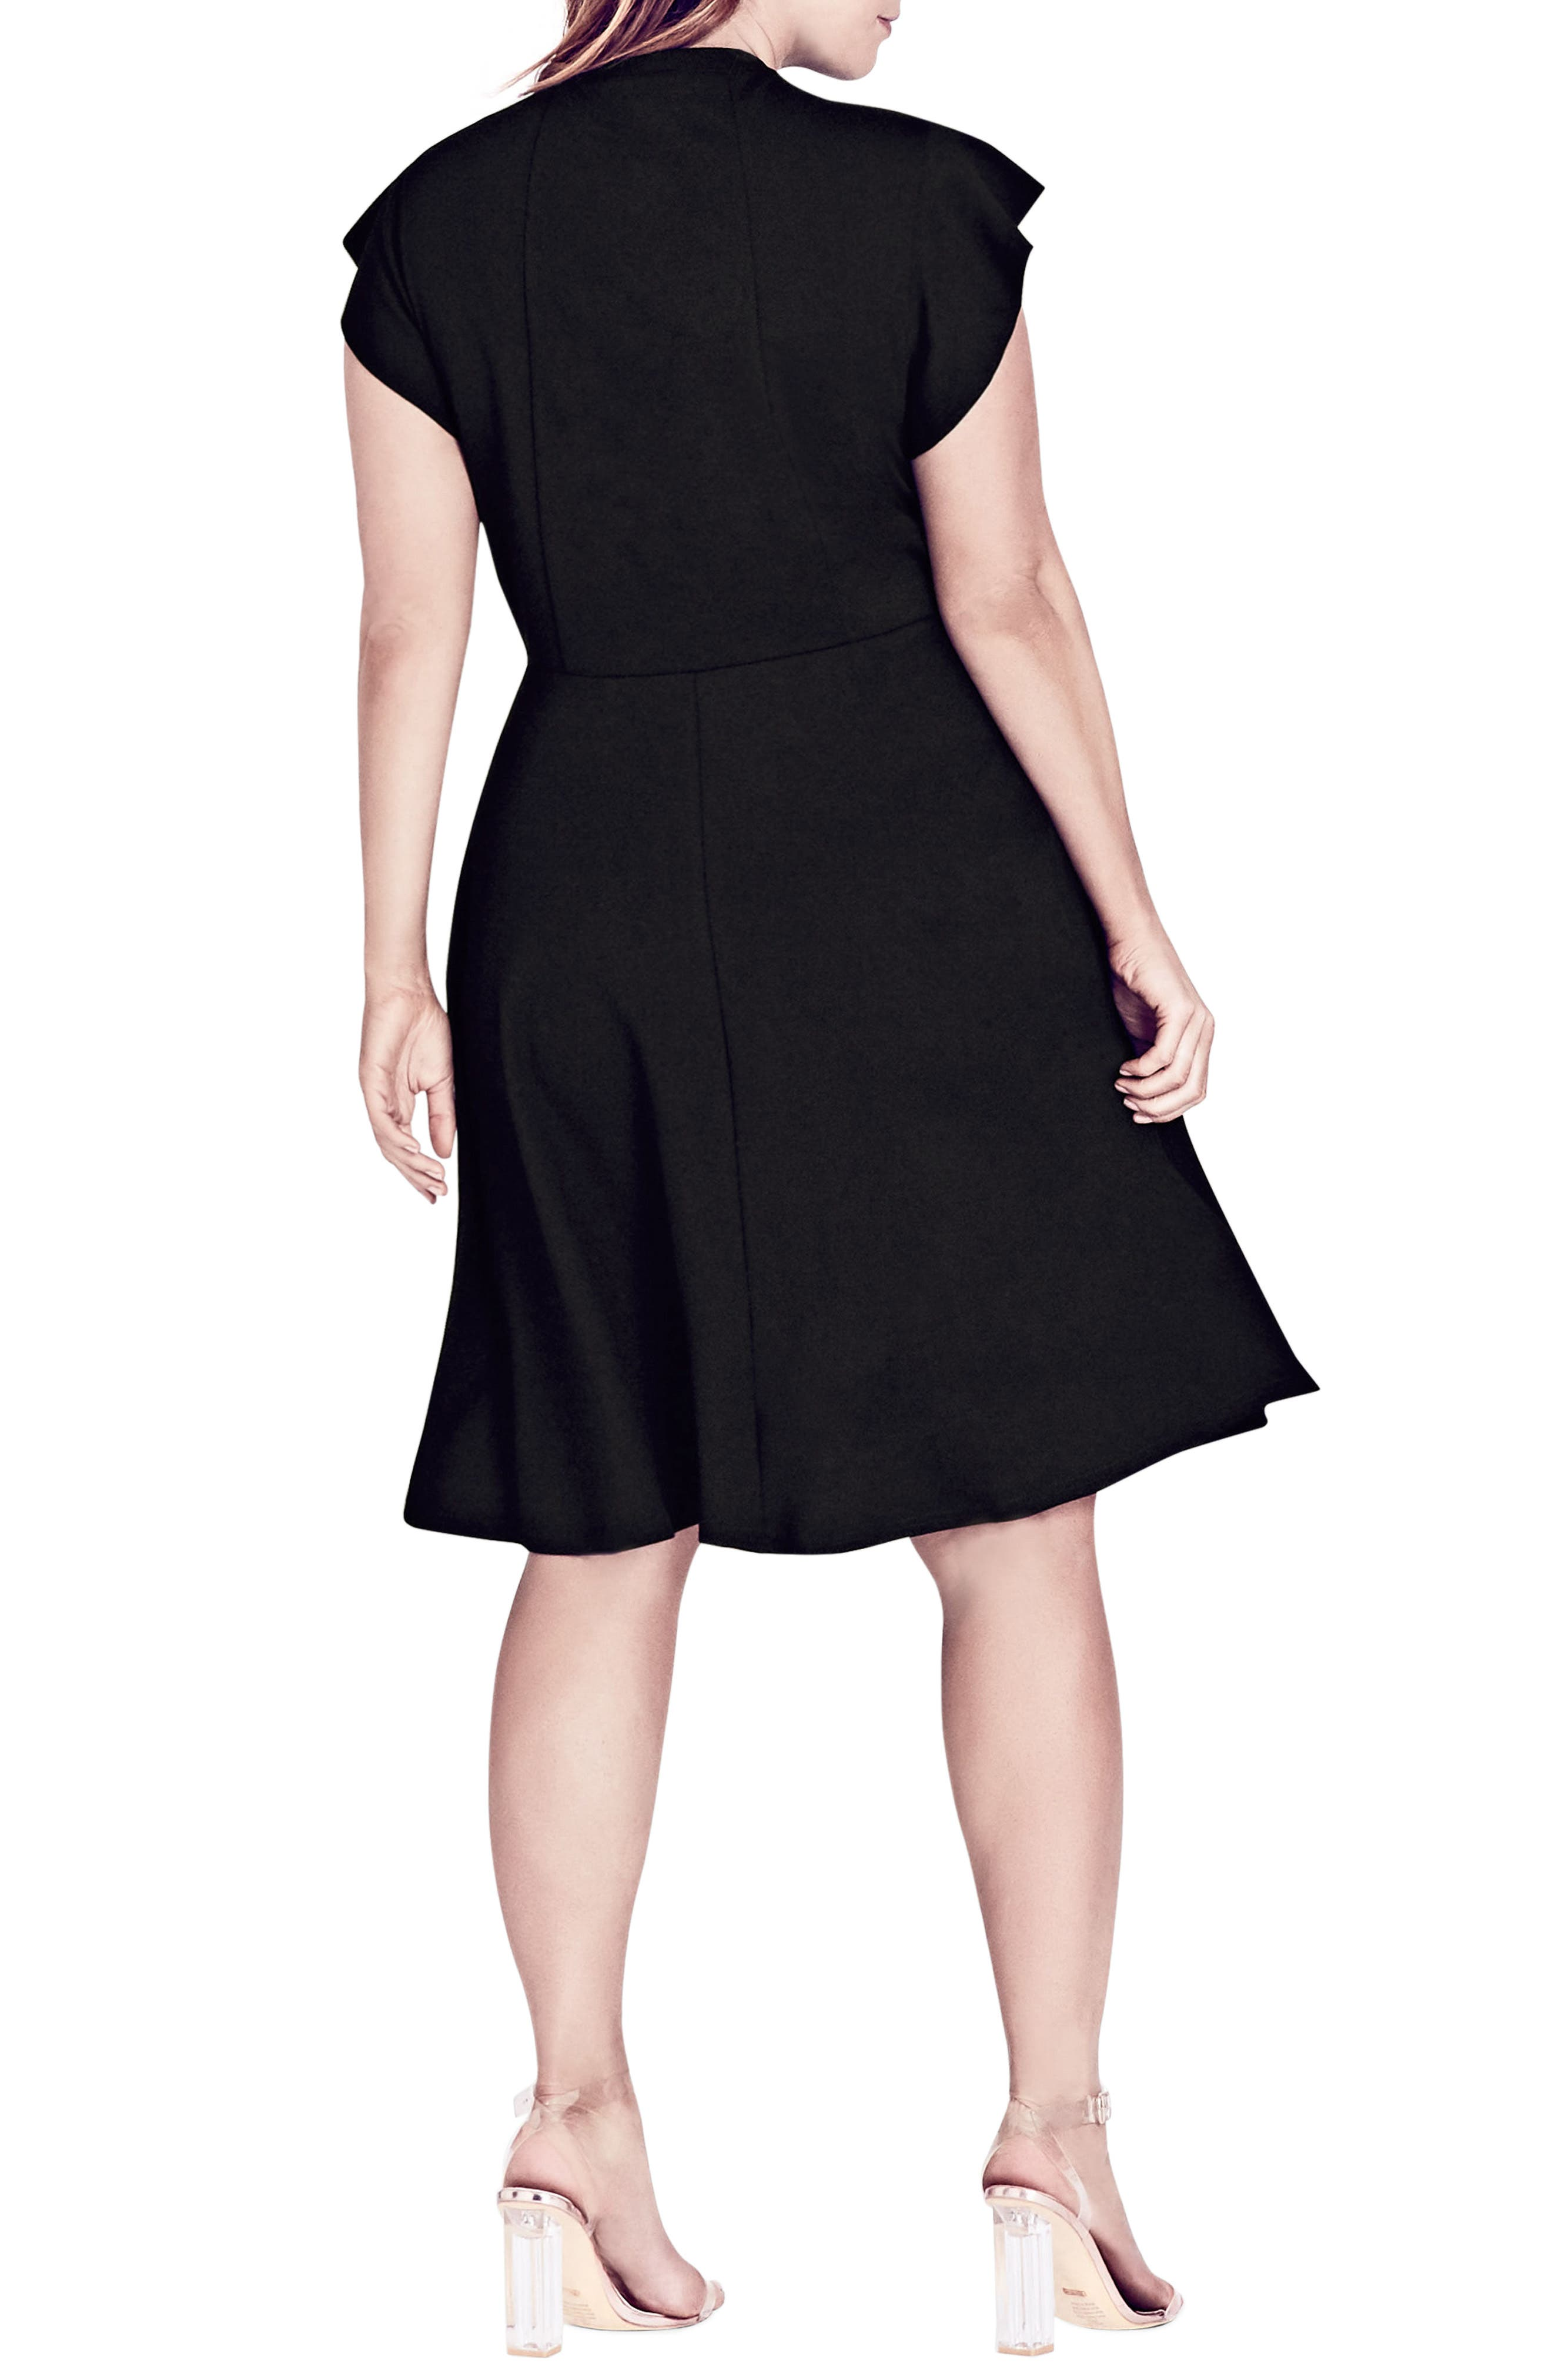 CITY CHIC,                             Frill Sleeve Fit & Flare Dress,                             Alternate thumbnail 2, color,                             BLACK